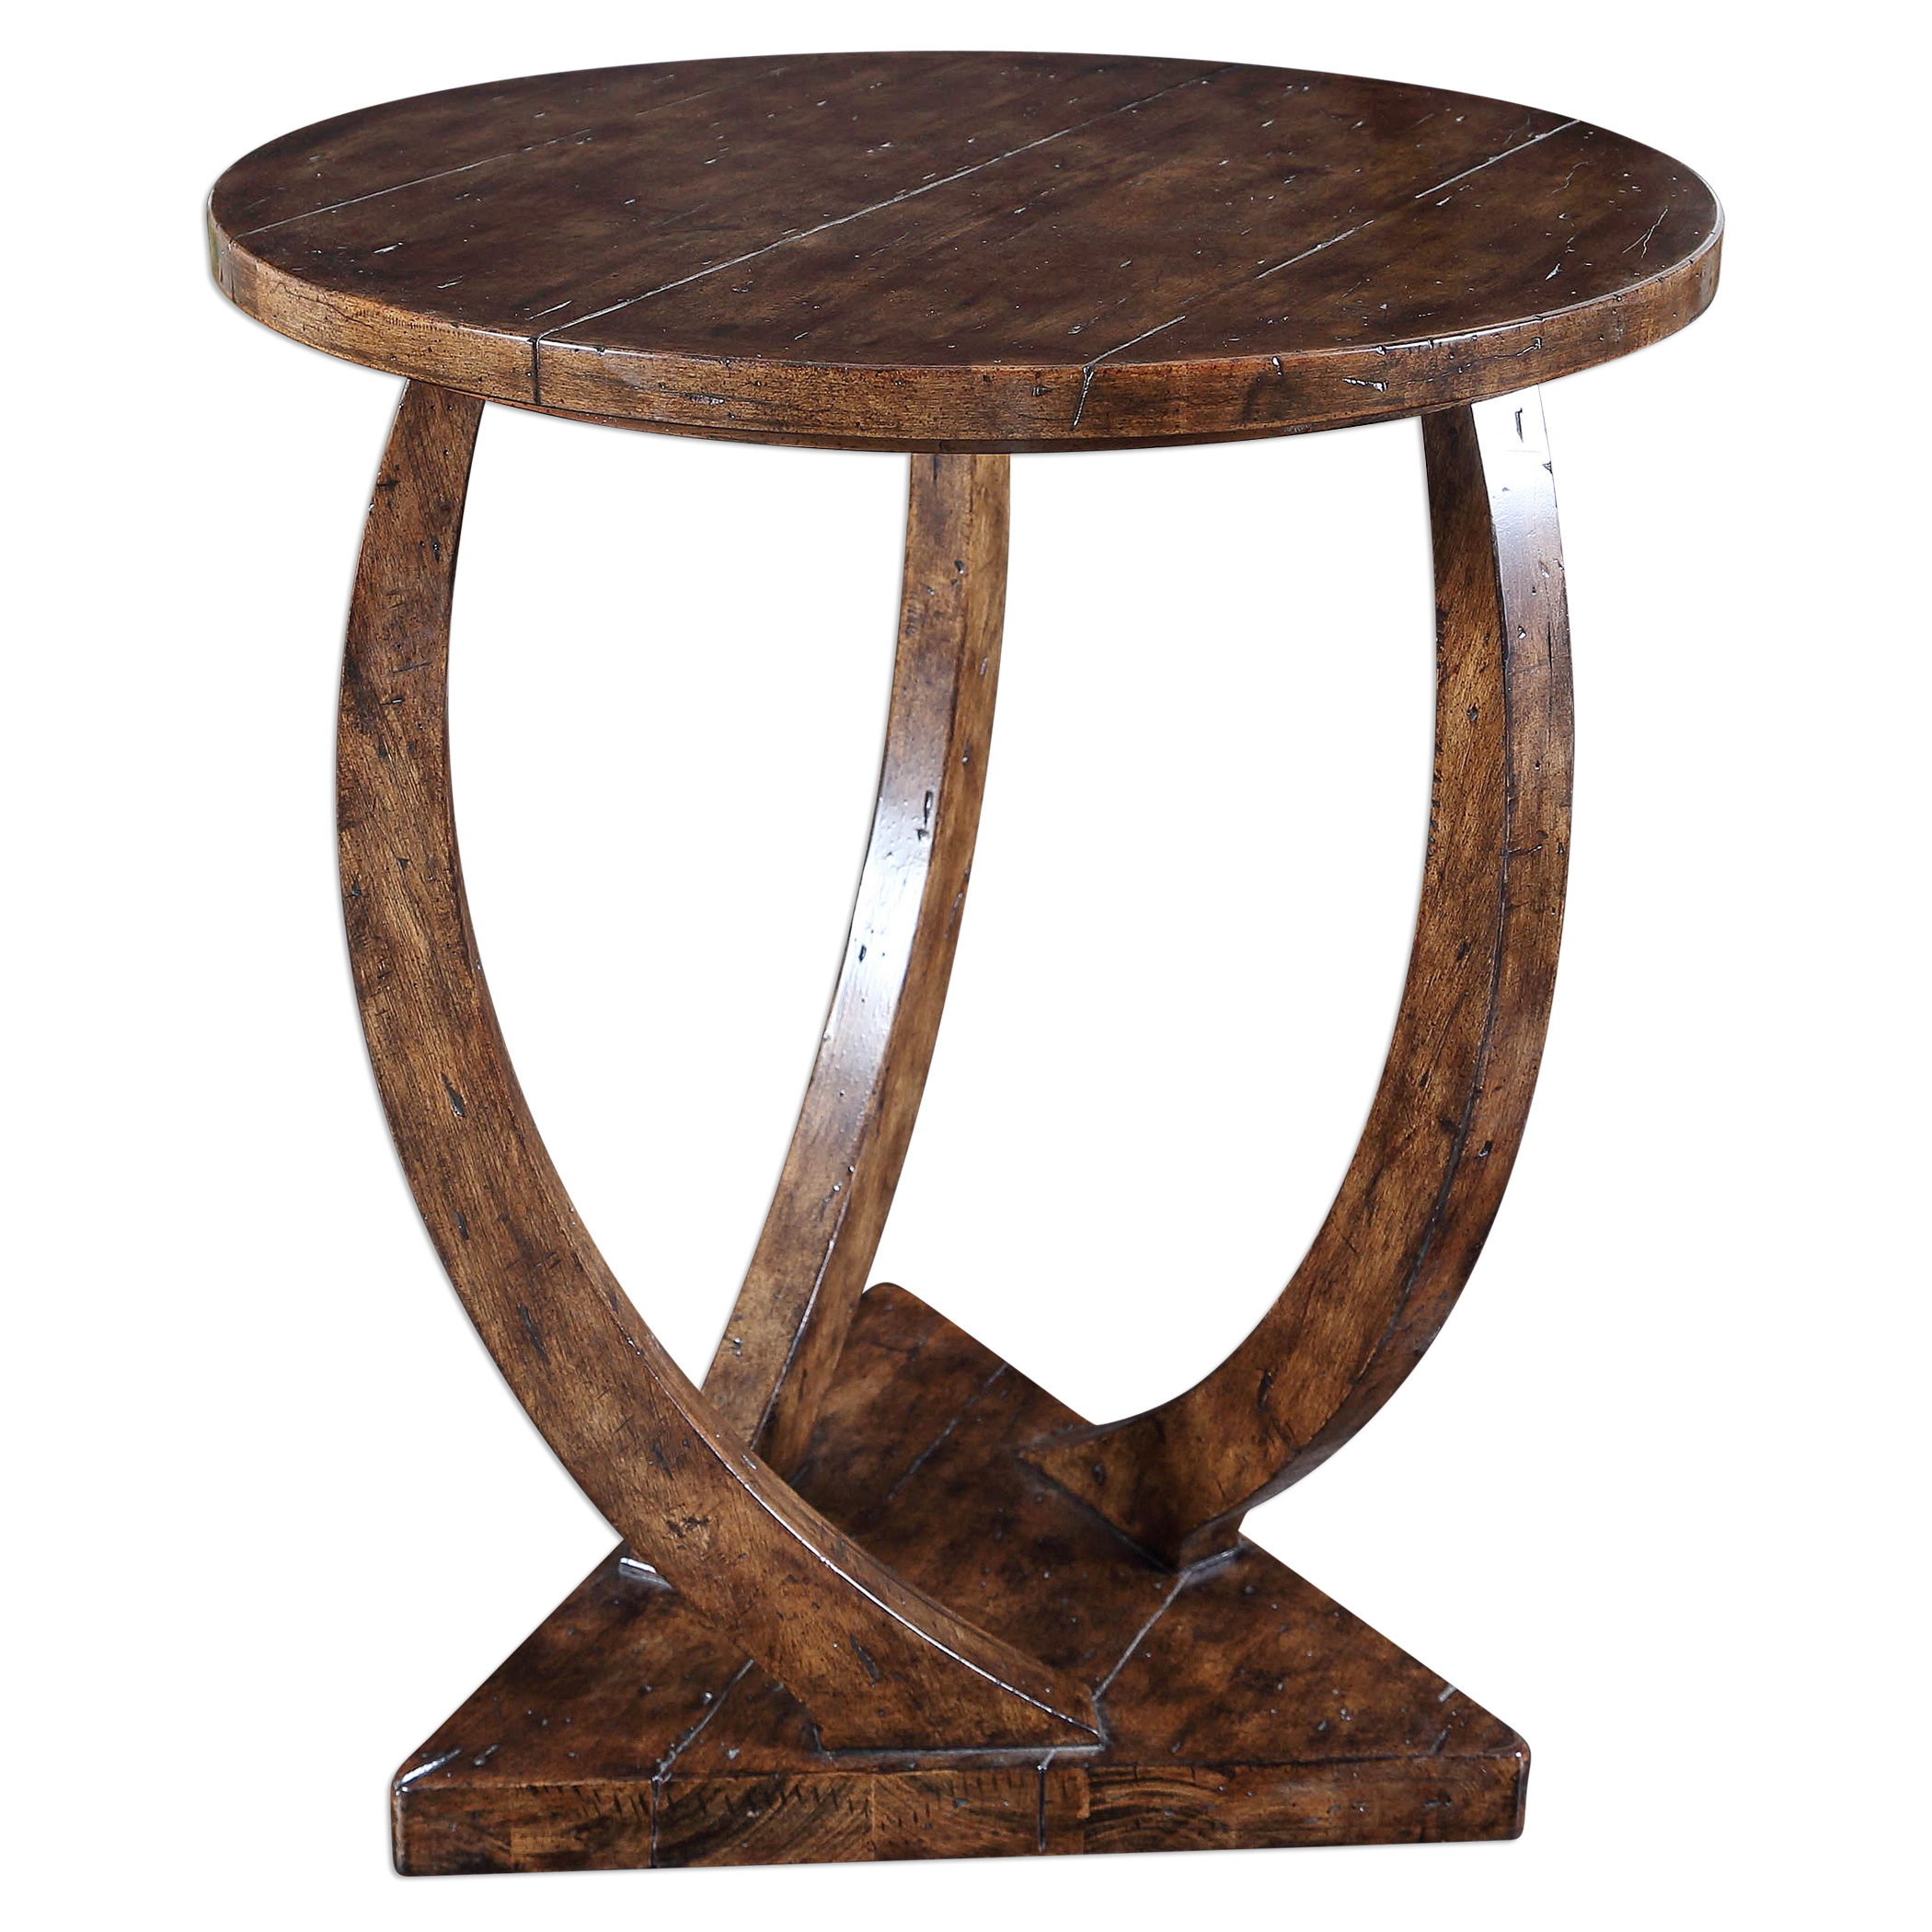 Uttermost Accent Furniture Pandhari Round Accent Table - Item Number: 25913